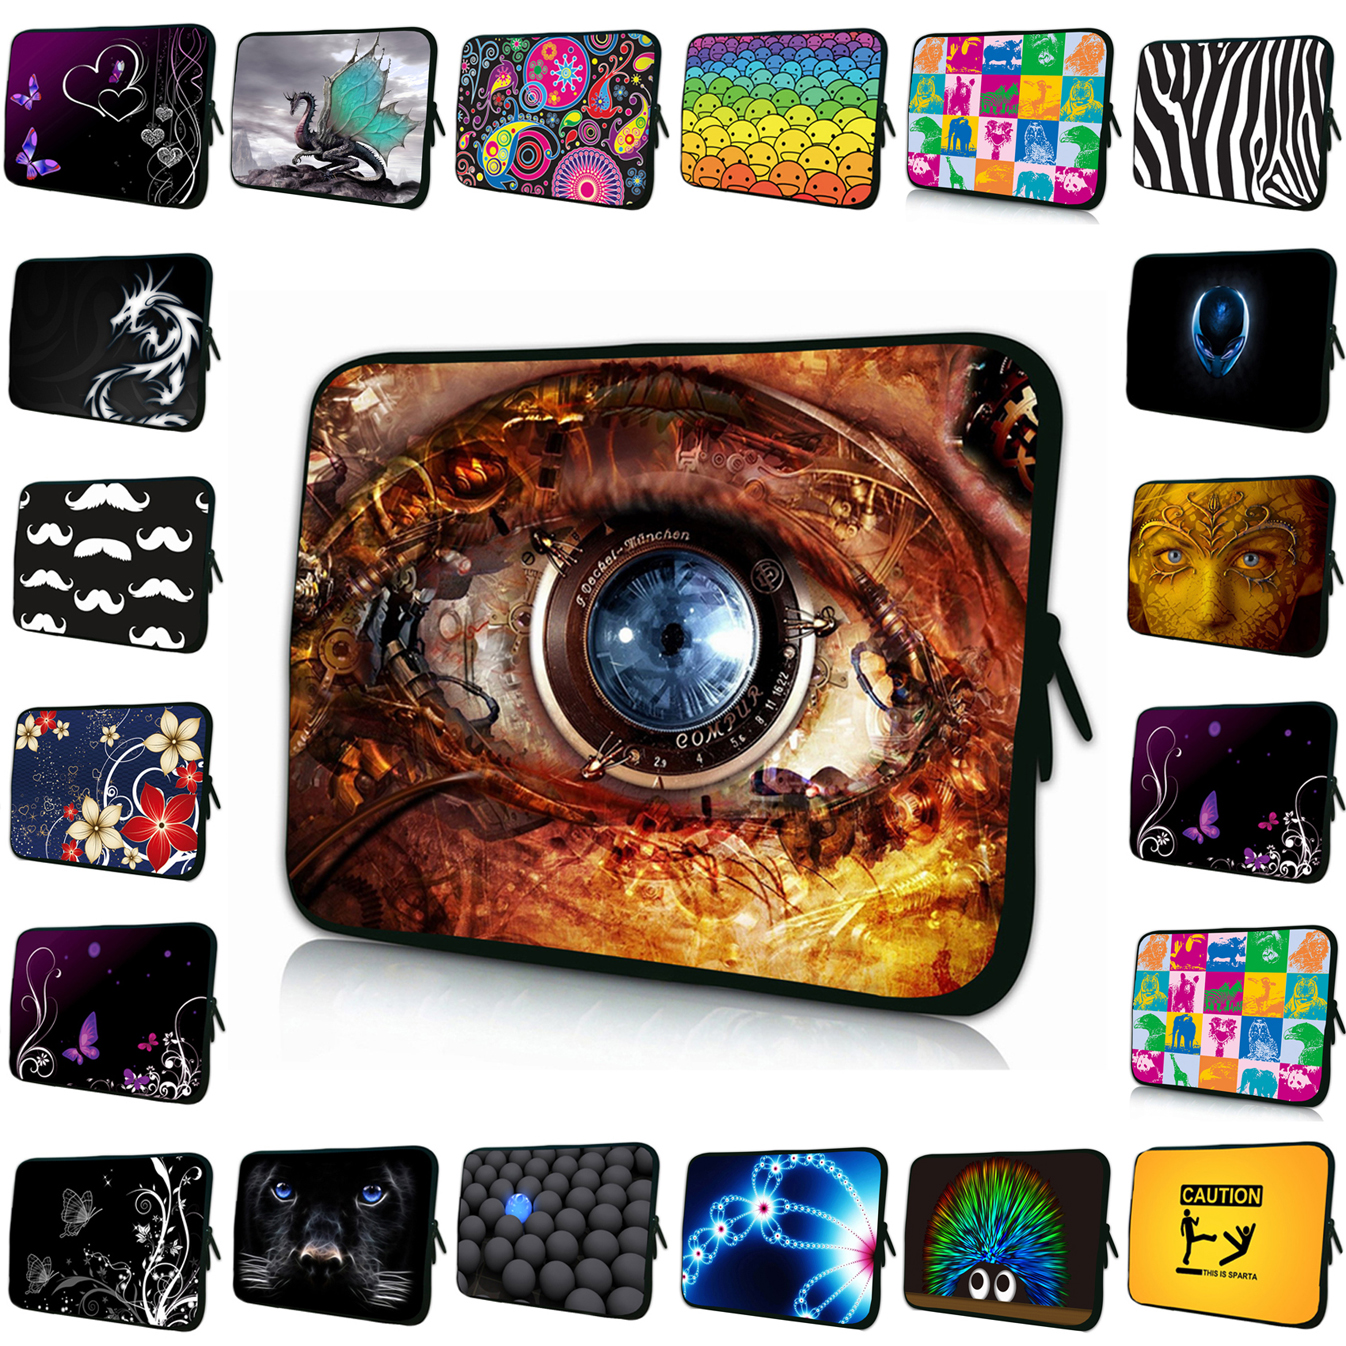 13 15 14 17 12 Inch Laptop Sleeve Bags For Teclast Chuwi hi10 HP Envy Asus Case 10 9.7 10.1 8 7.7 7 Inch Universal Tablet Cases